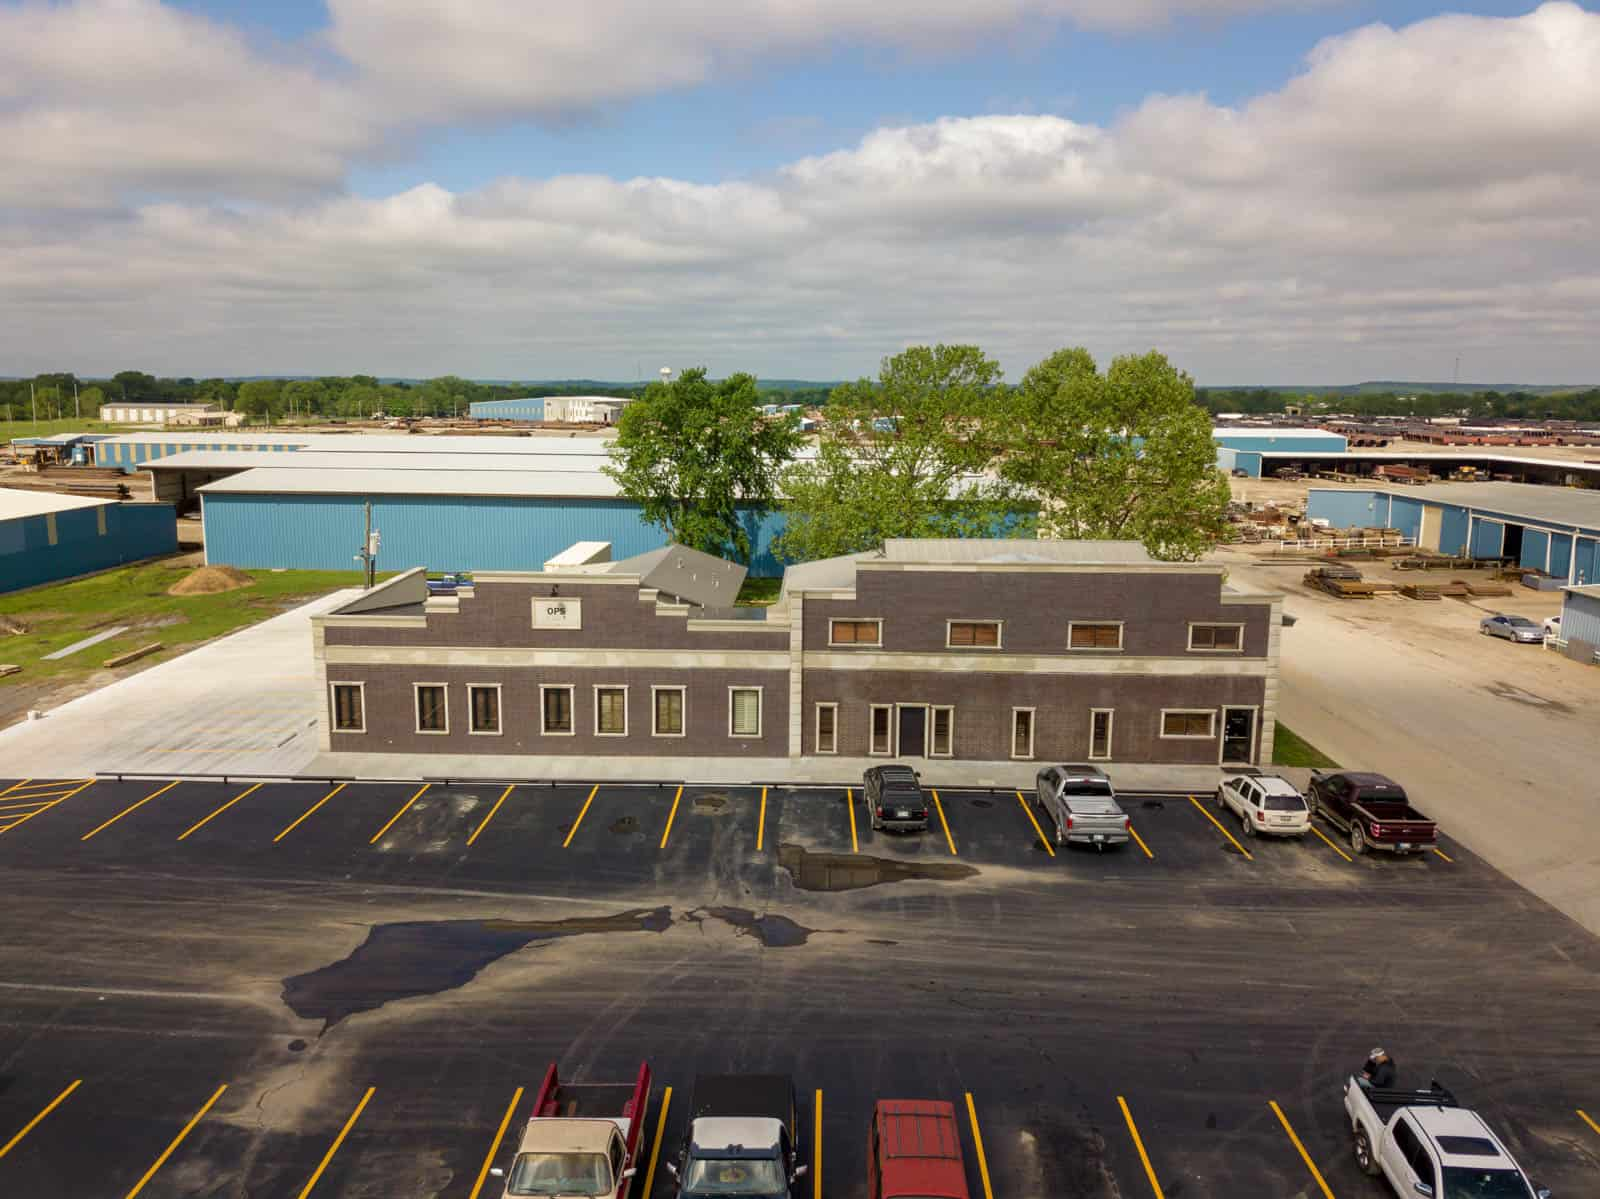 drone photo of commercial property in Dewey, OK